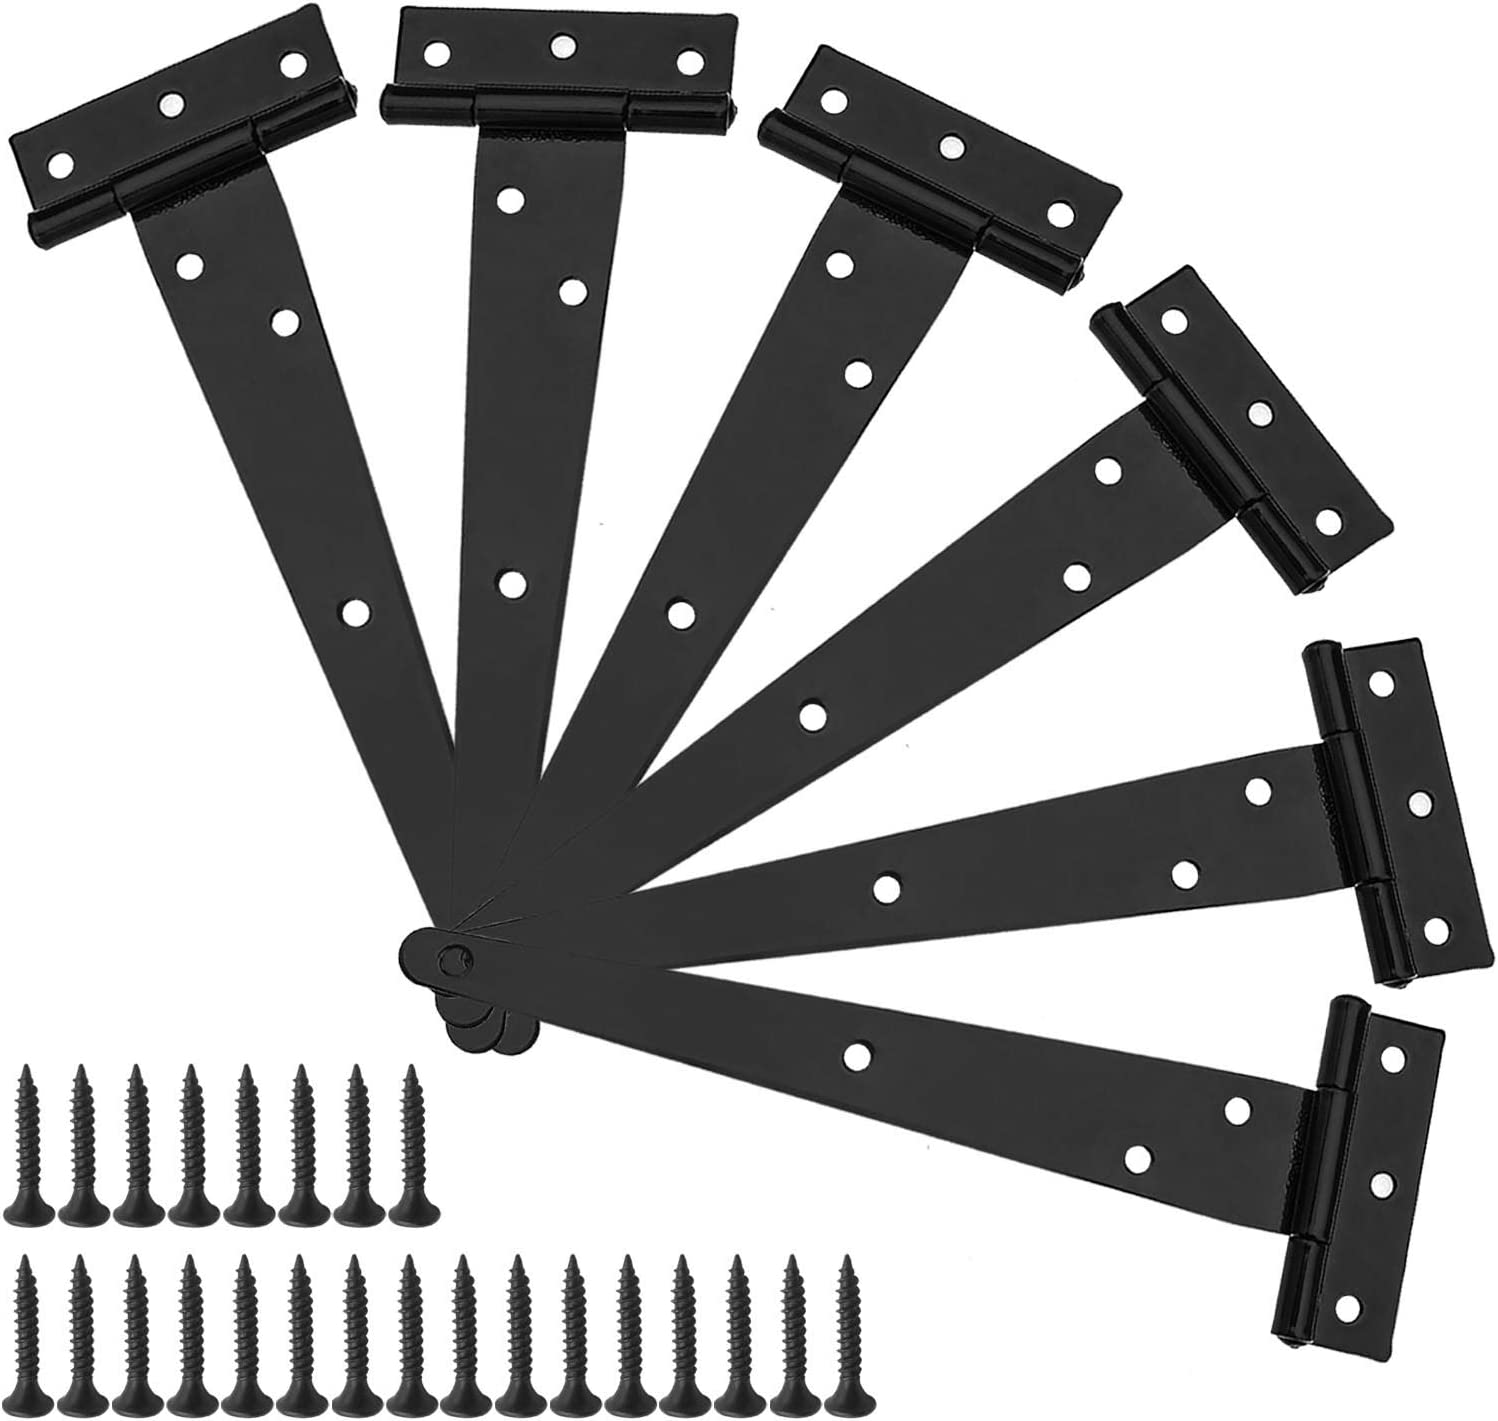 Sacramento Mall 6Pcs 10 Inch T-Strap Tee Max 90% OFF Hinge Shed Duty T-Hinges Heavy Set Gate